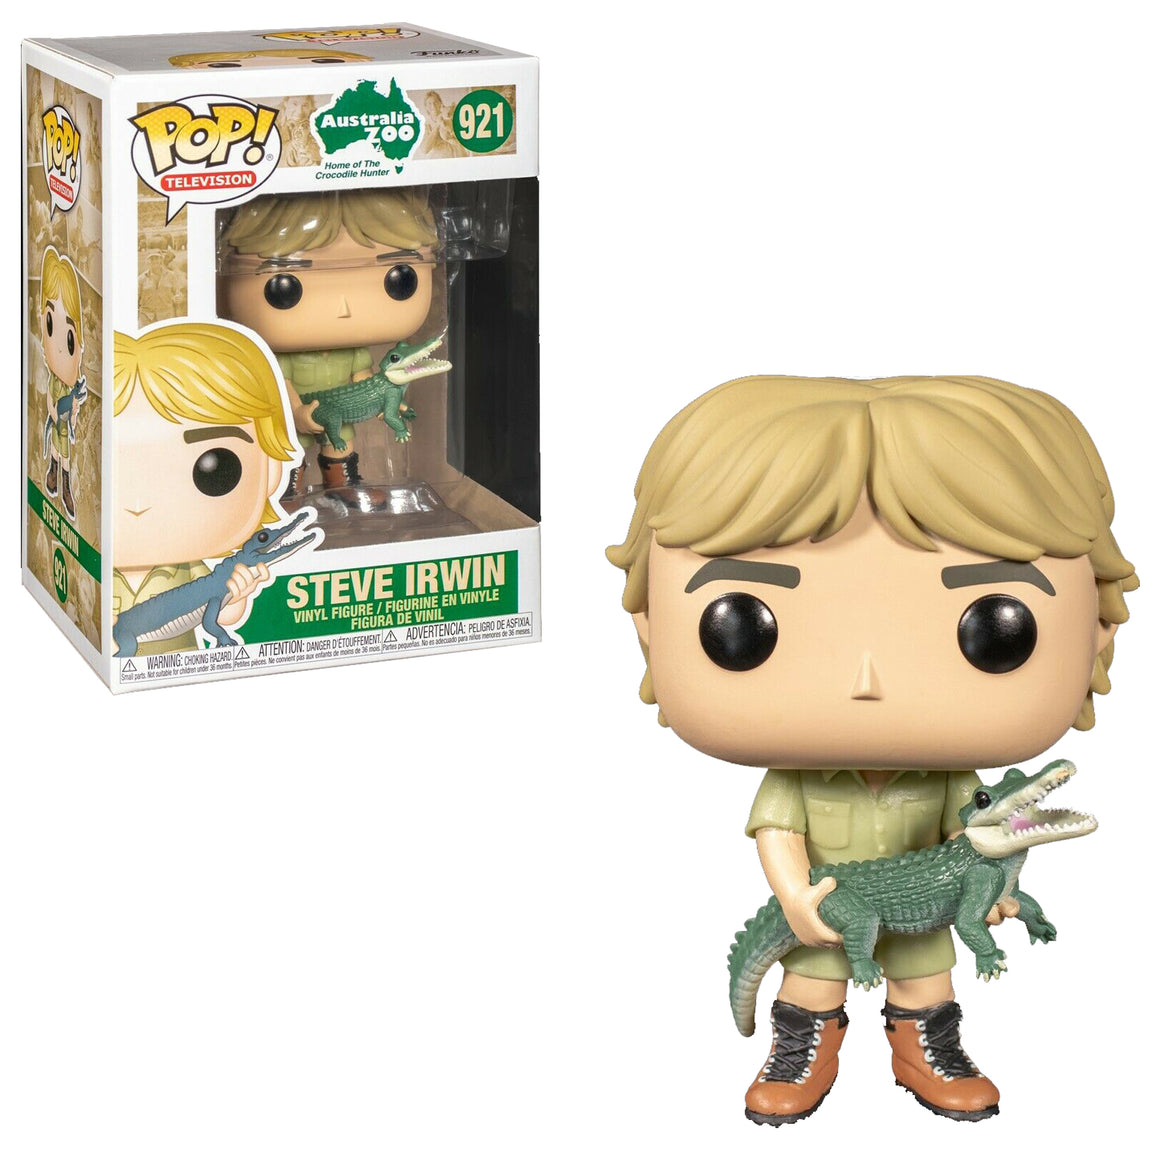 Funko Pop Vinyl Figurine Steve Irwin The Crocodile Hunter #921